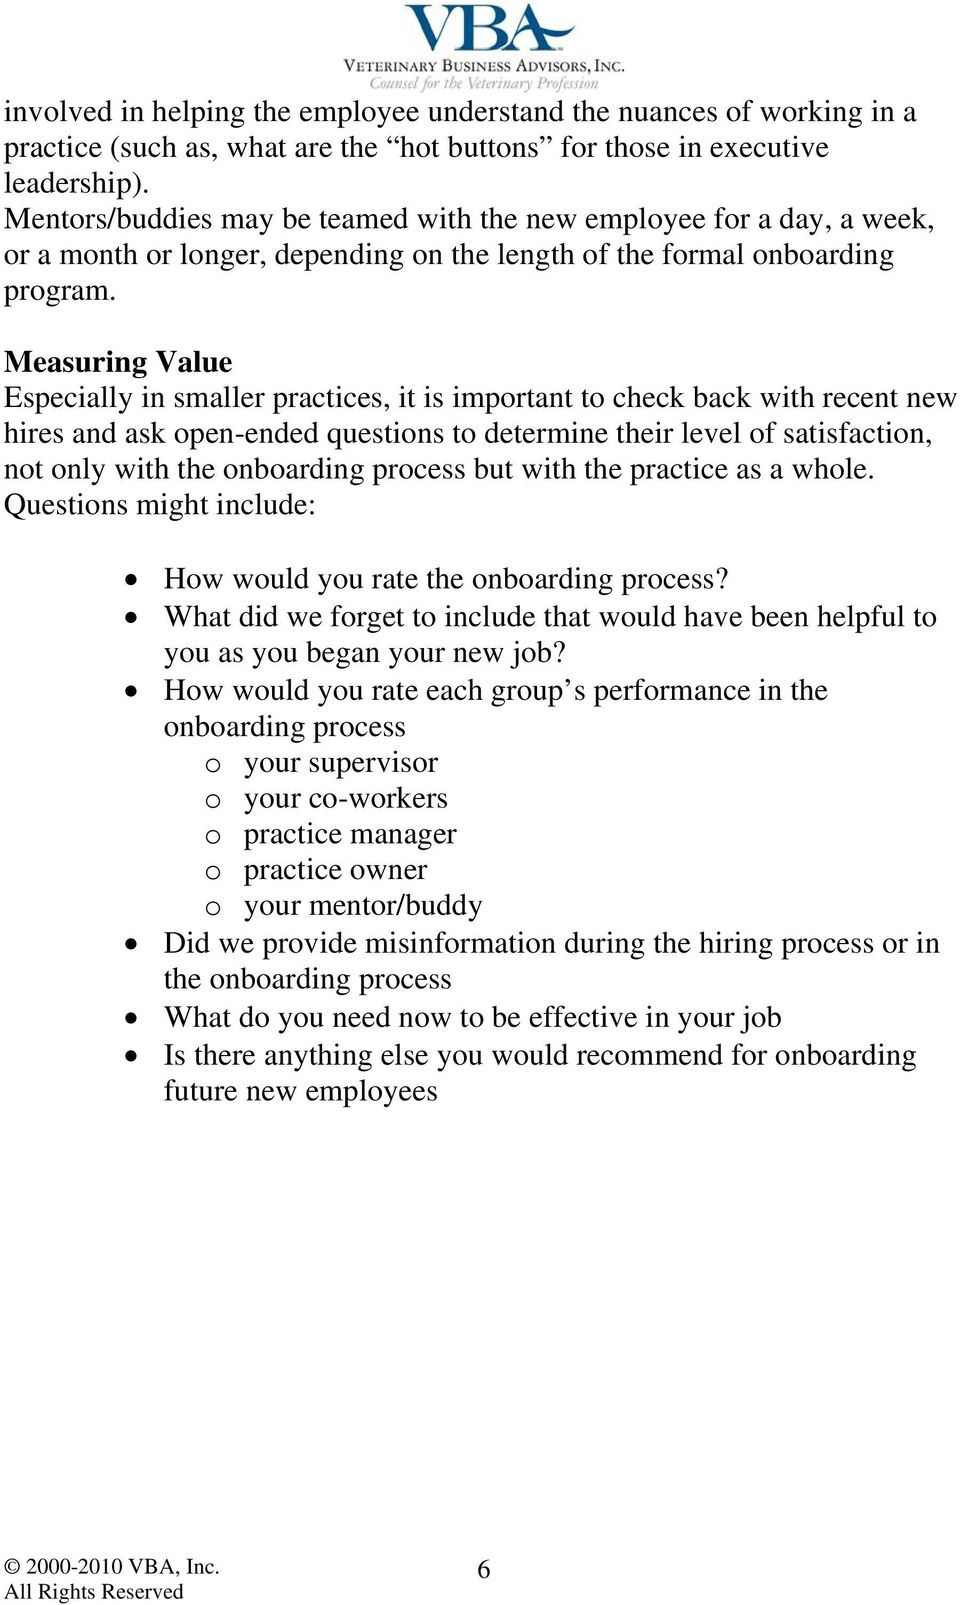 Measuring Value Especially in smaller practices, it is important to check back with recent new hires and ask open-ended questions to determine their level of satisfaction, not only with the